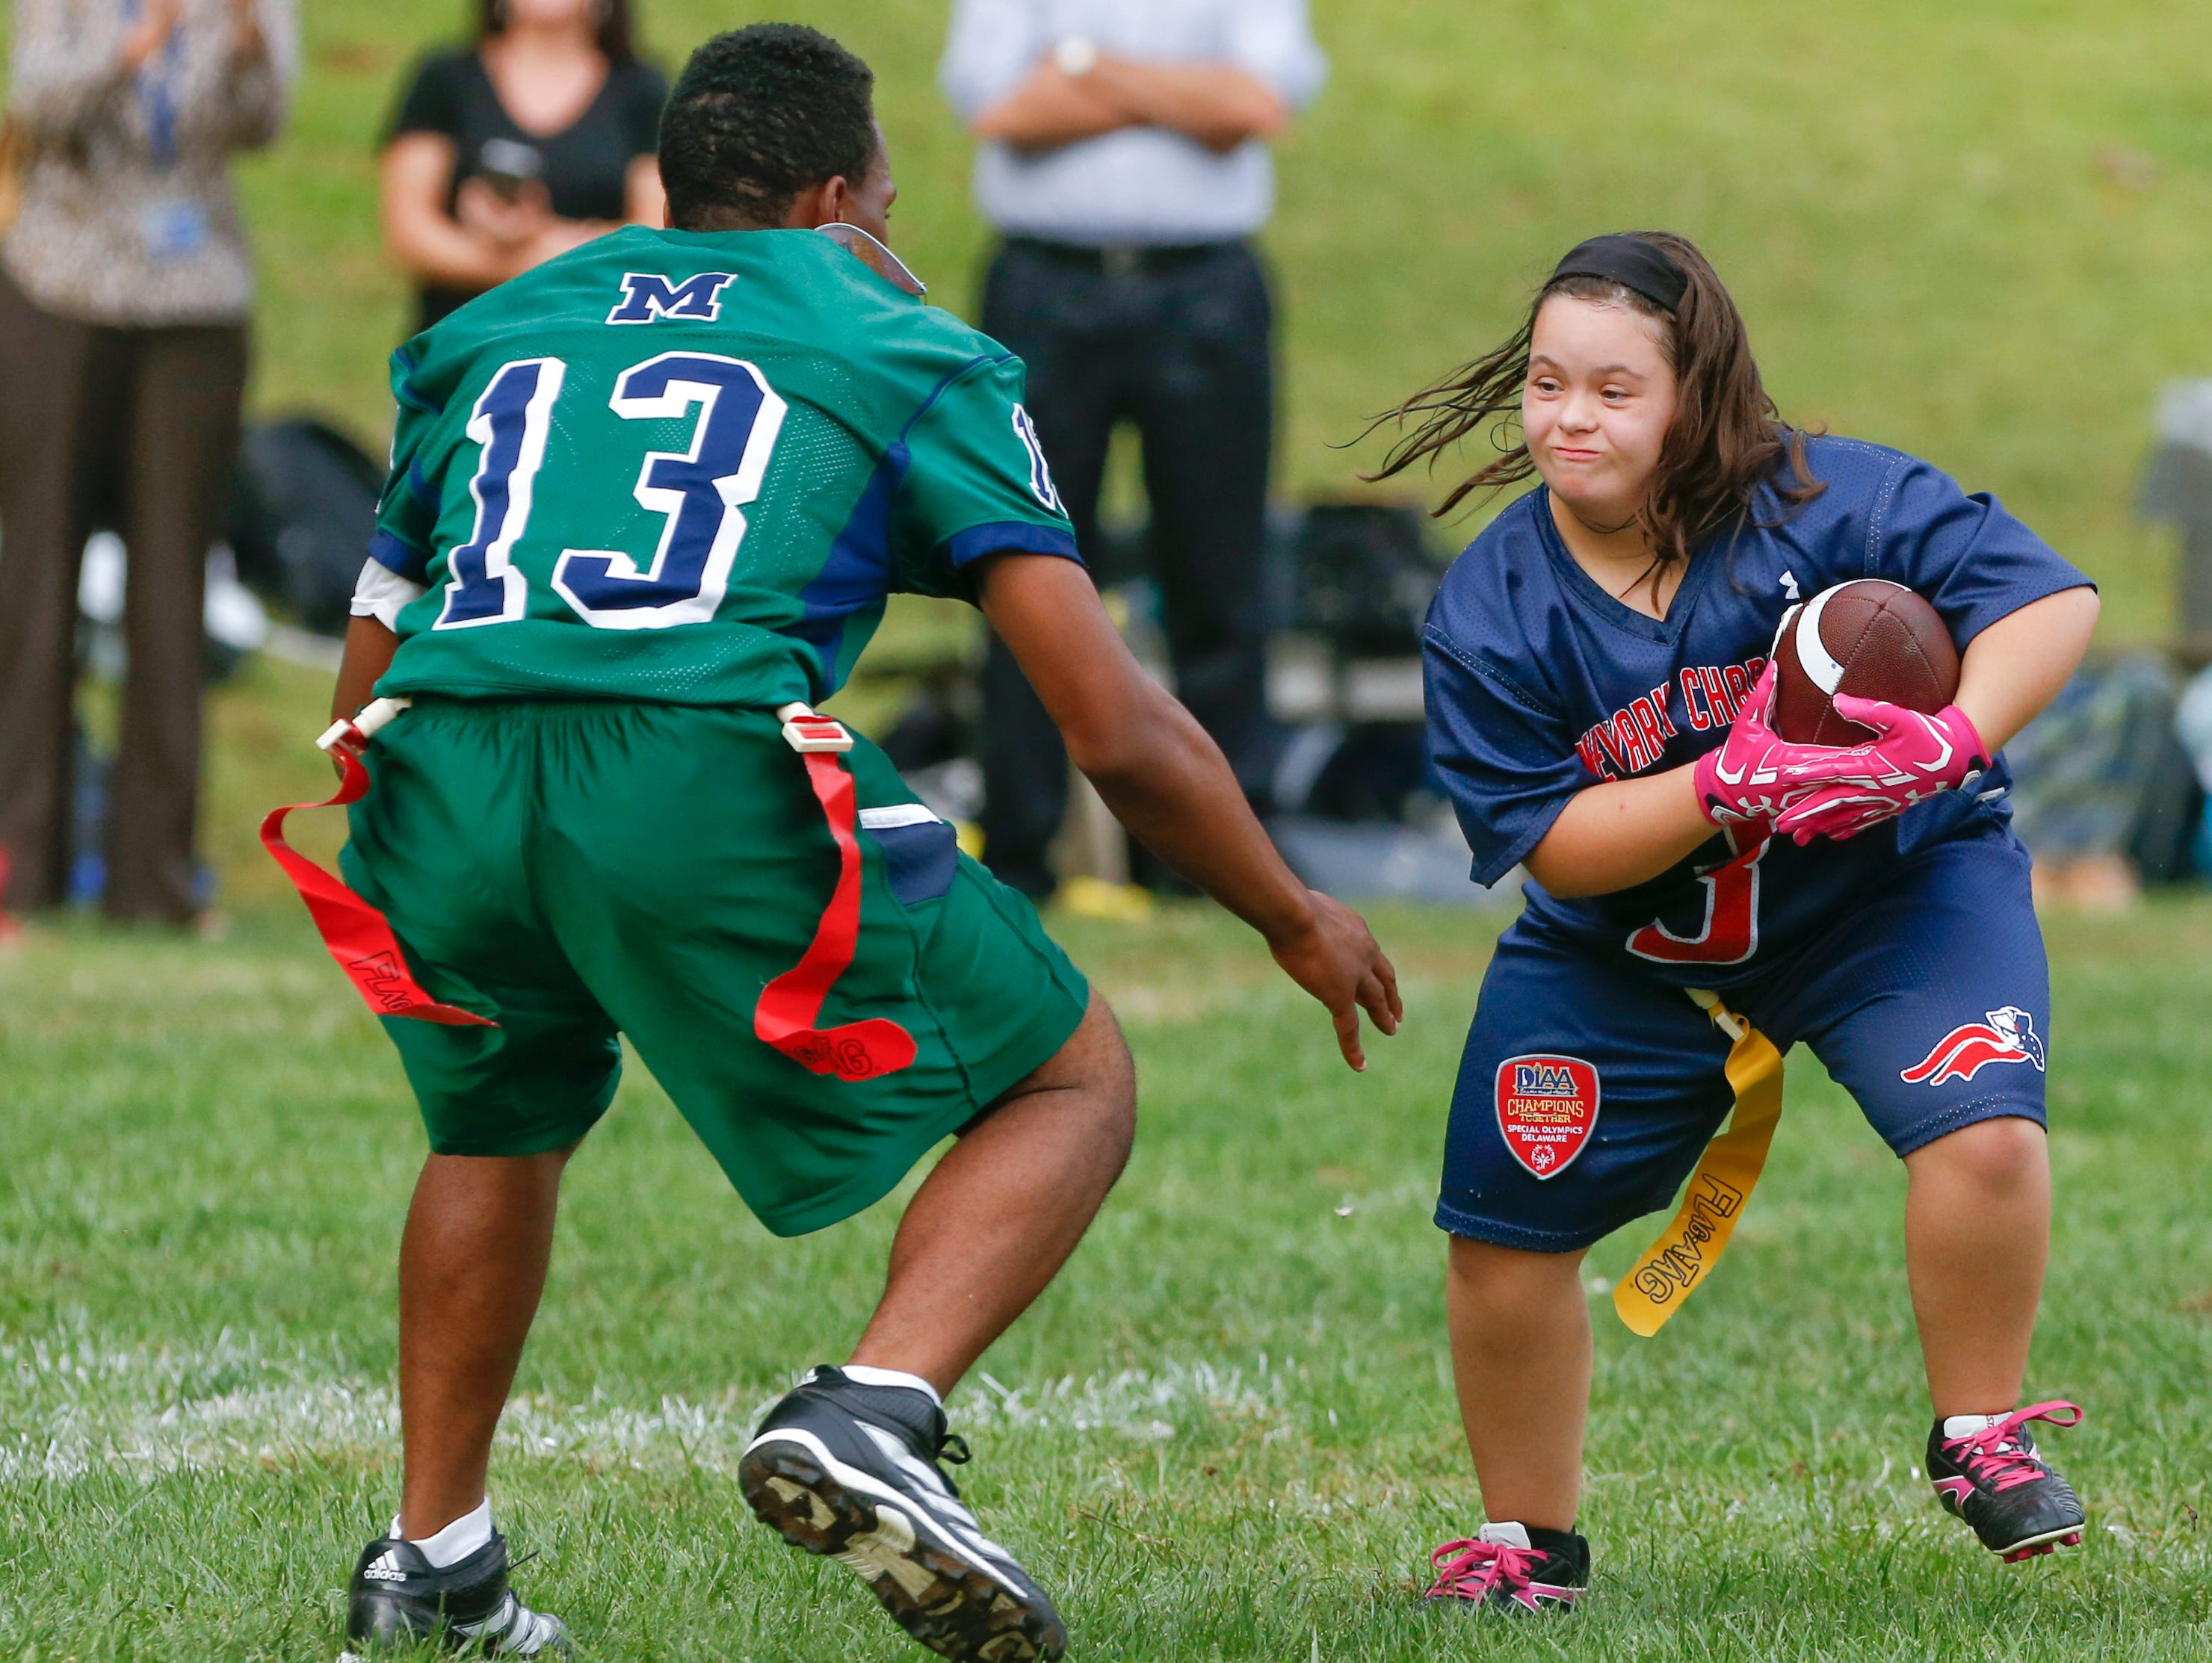 McKean's Da'Quan Scott defends as Newark Charter's Hannah Tressler looks for running room in McKean's 24-14 win in the Unified flag football opener at McKean High School Tuesday.